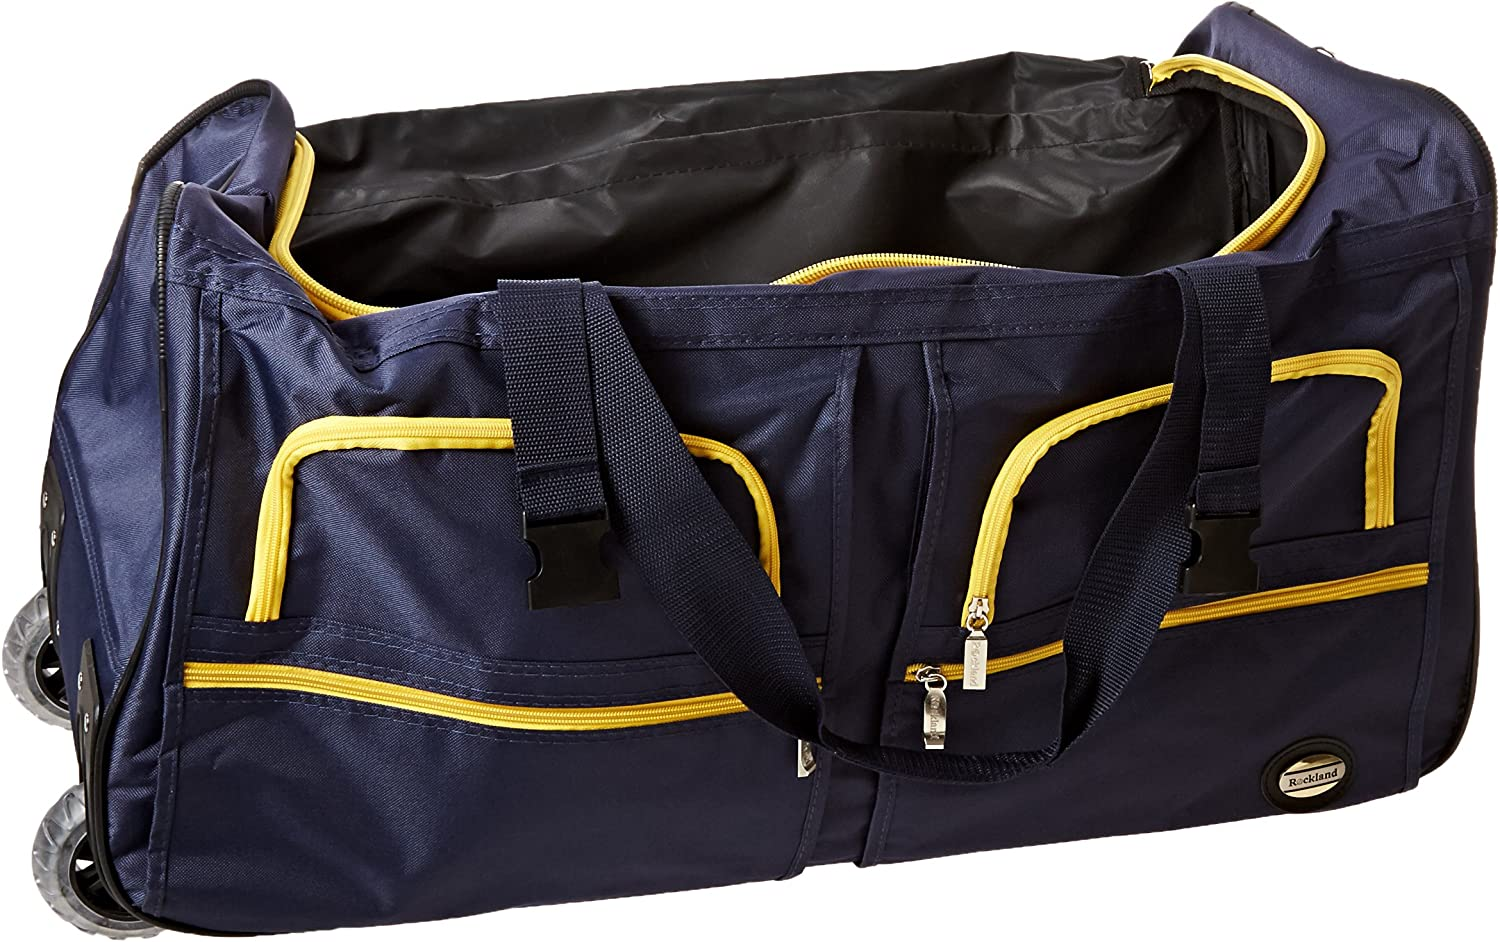 | Rockland Rolling Duffel Bag, Black, 36-Inch | Travel Duffels